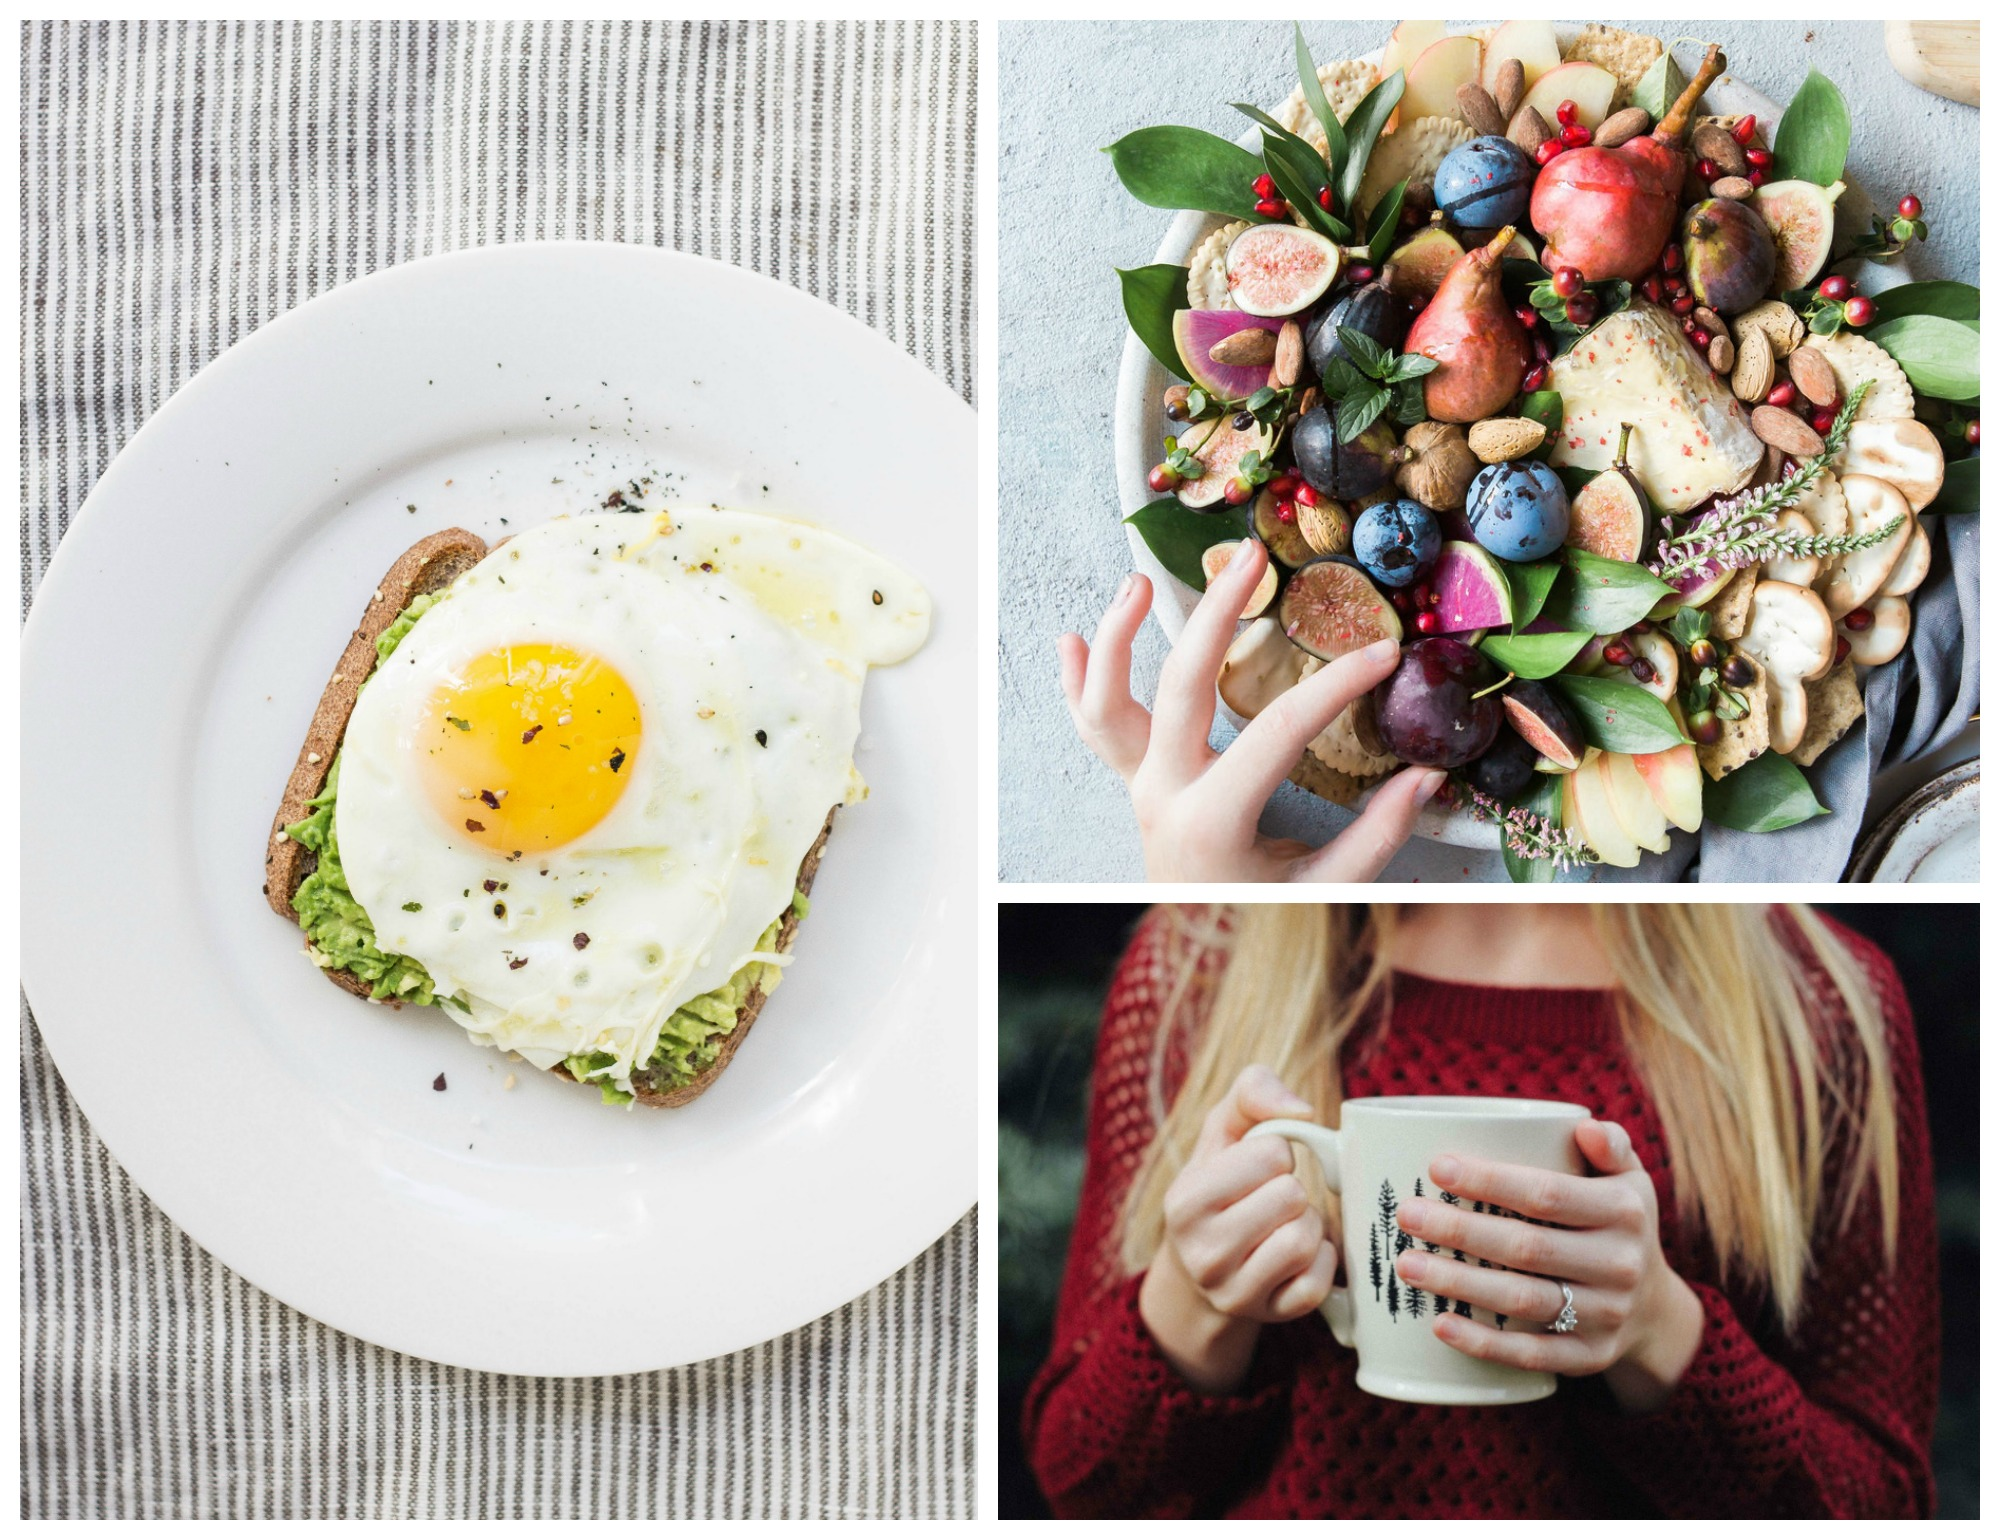 8 Foods You Should Ditch Now To De-Bloat By This Weekend pics